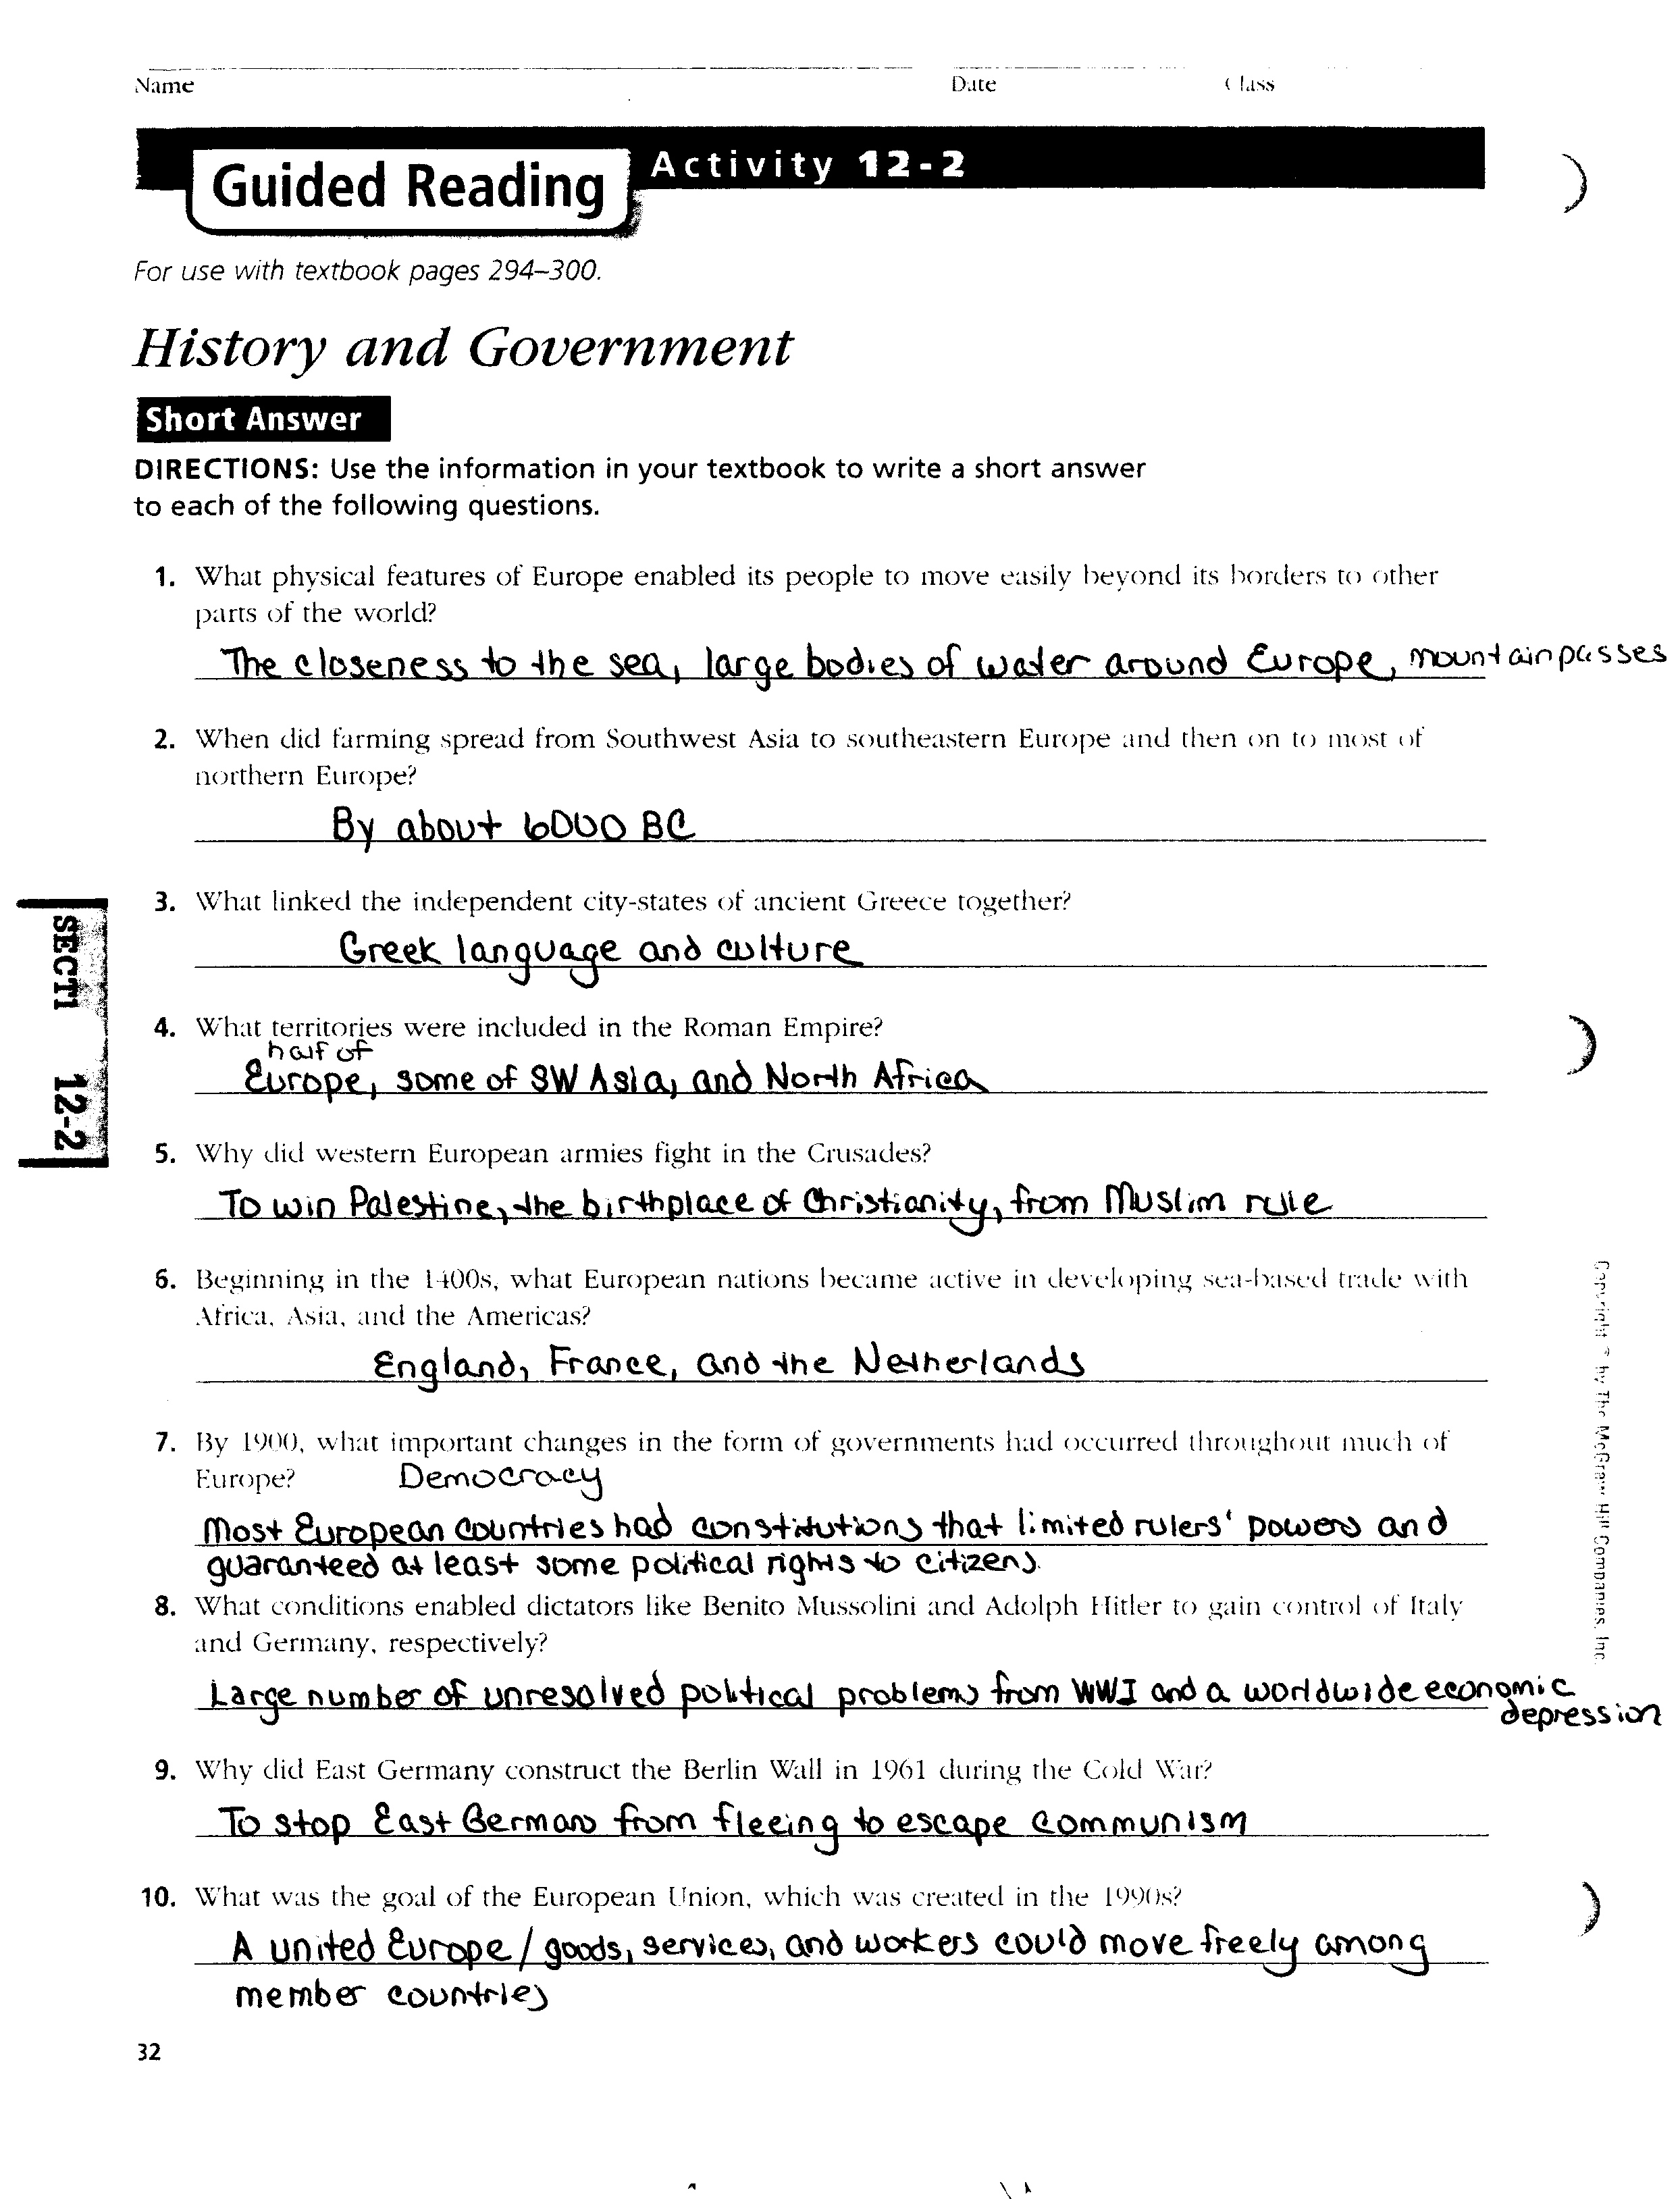 world history guided activity answer how to and user guide rh taxibermuda co guided reading activity 3-4 the amendments guided reading activity 3-4 emerging europe and the byzantine empire answers